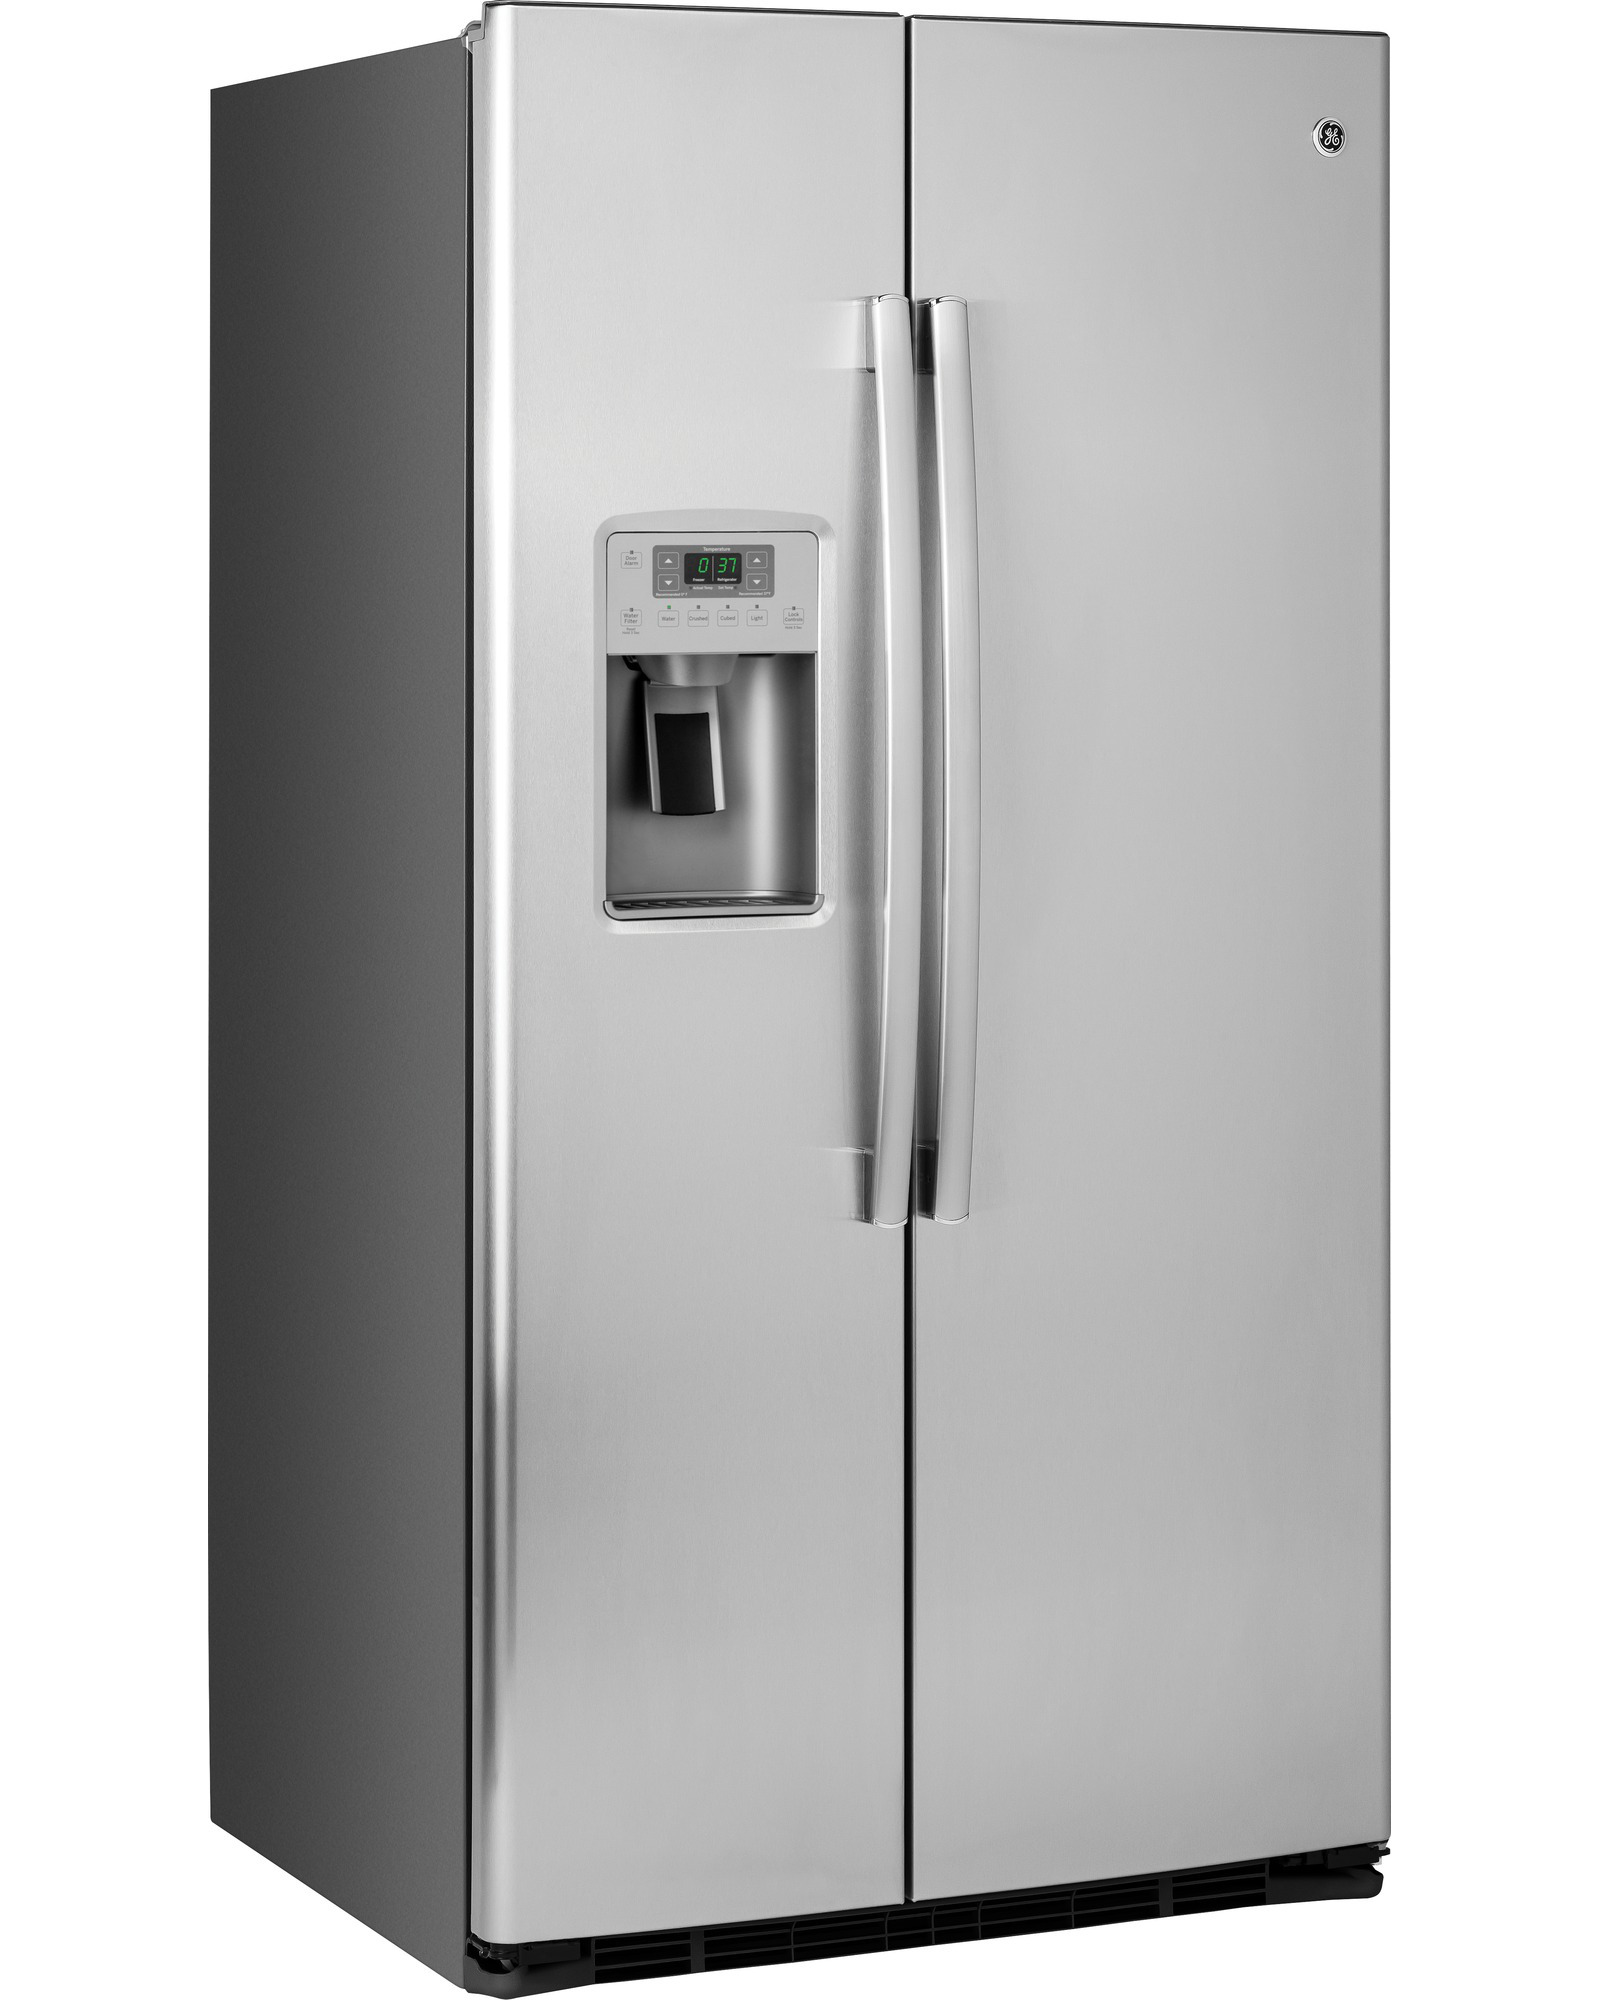 GE Appliances GSE25HSHSS 25.4 cu. ft. Side-By-Side Refrigerator - Stainless